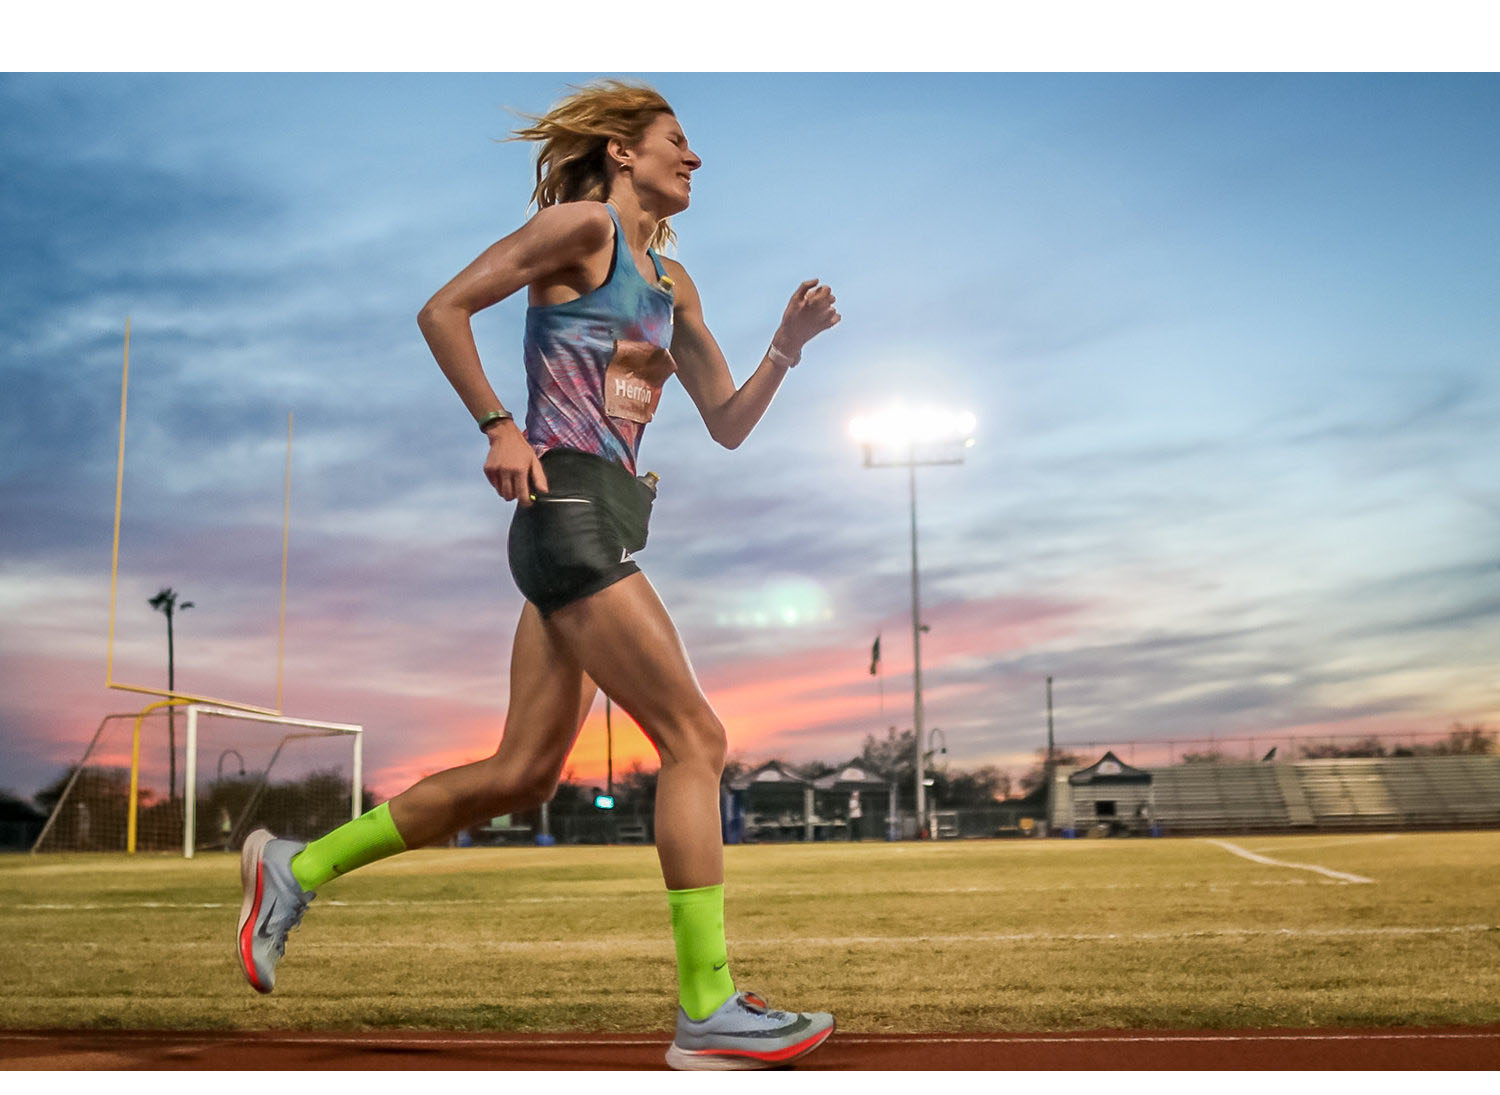 Camille Herron: The Fearless Champion – Competitor Running